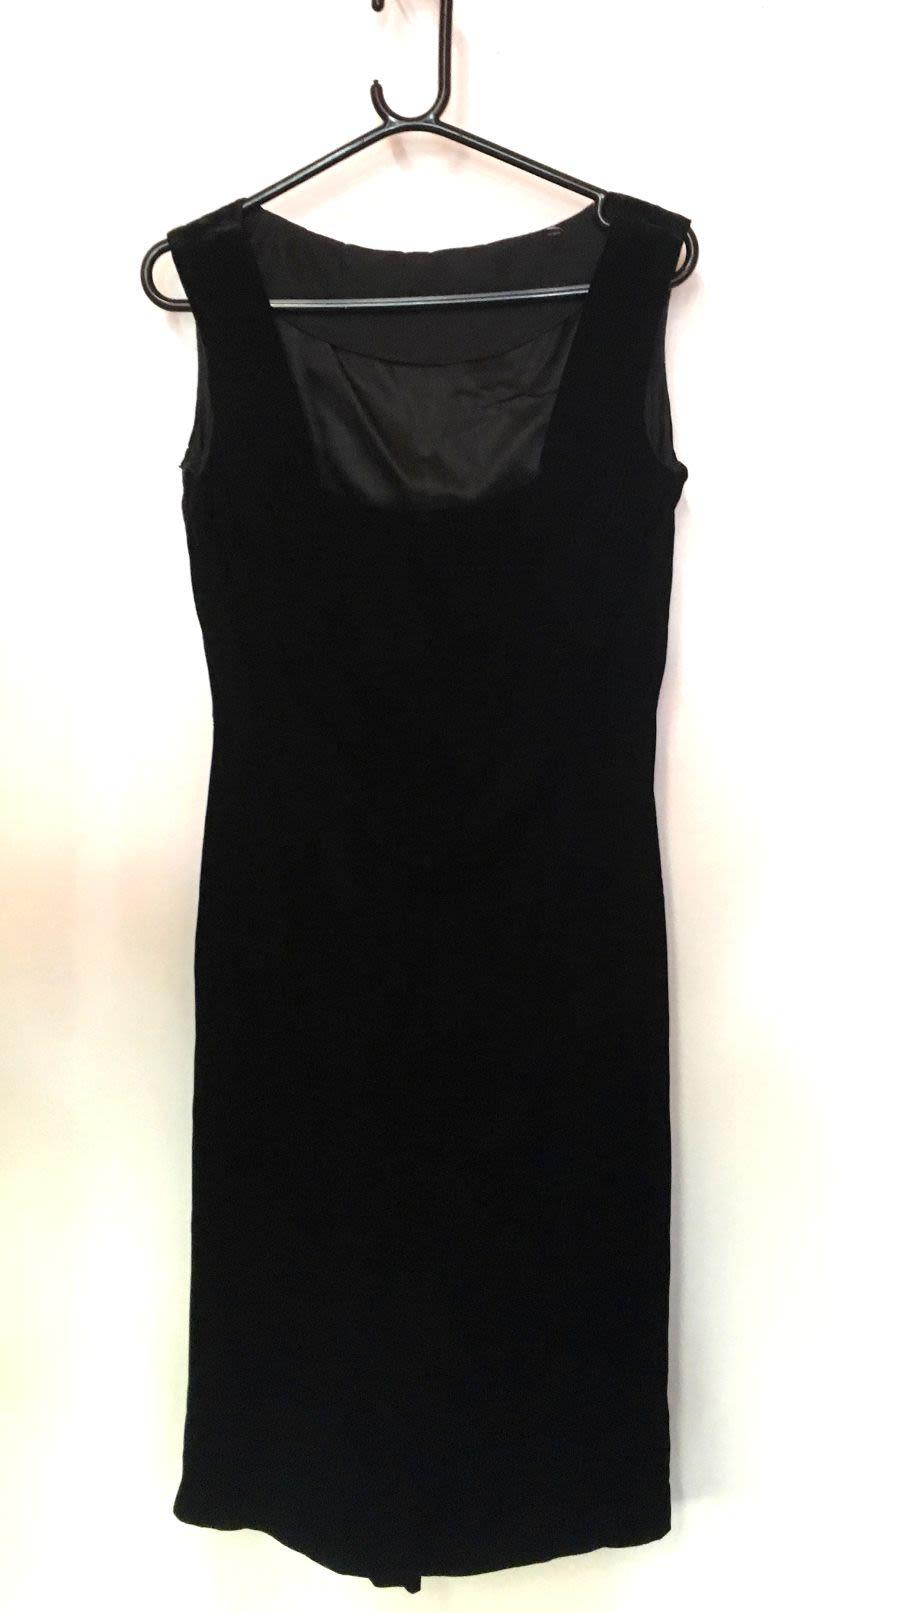 Vintage Black Velvet Drape Detail Wiggle Fit Dress